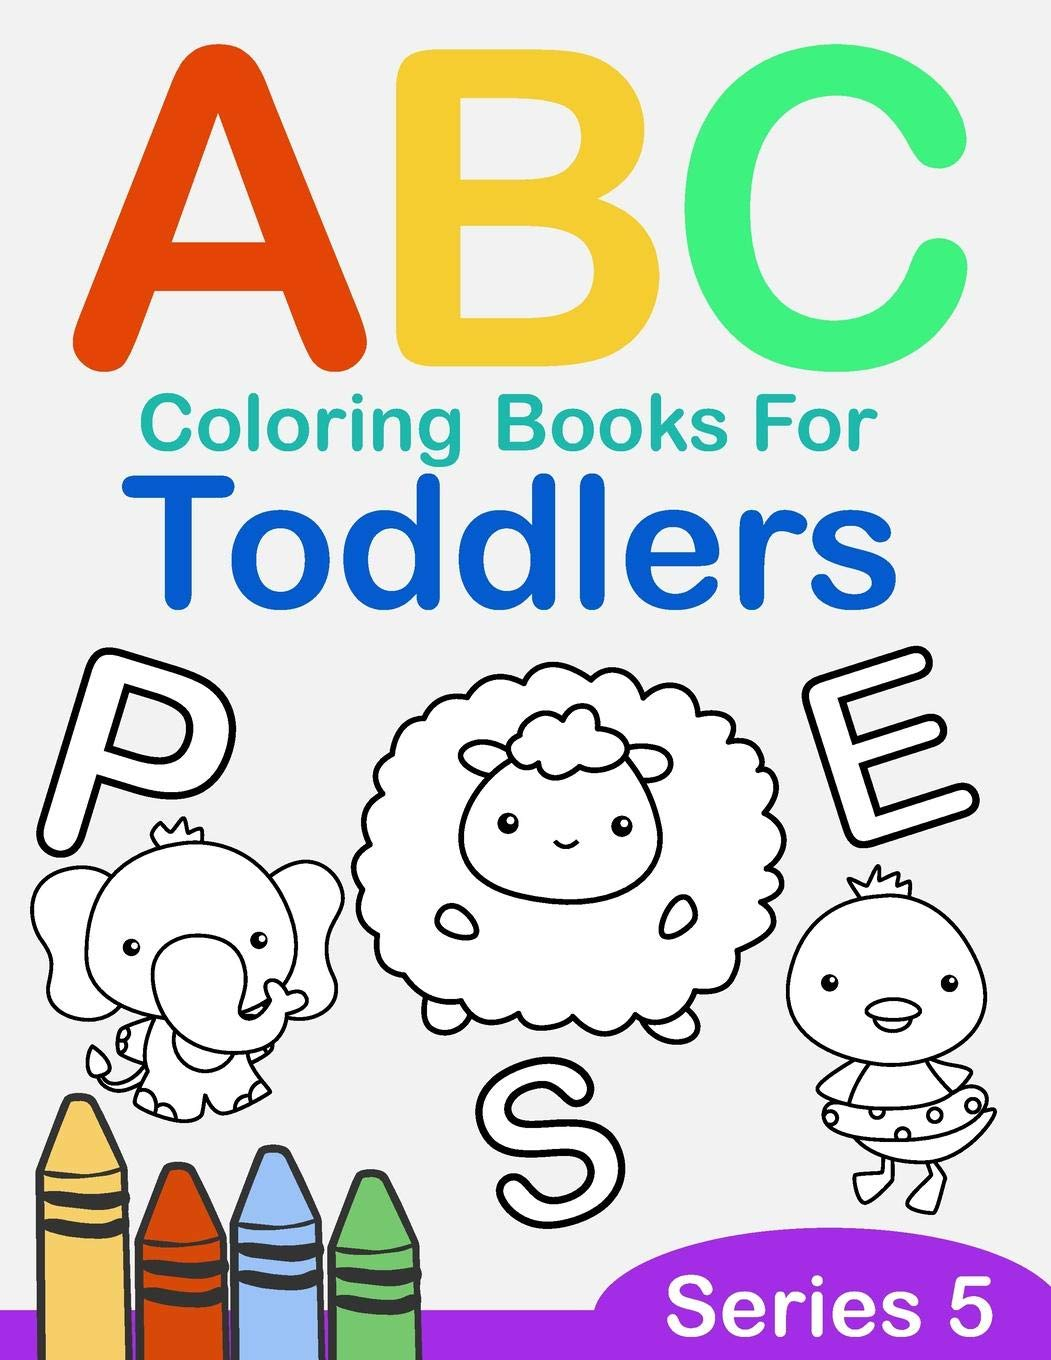 ABC Coloring Books for Toddlers Series 5: A to Z coloring ...